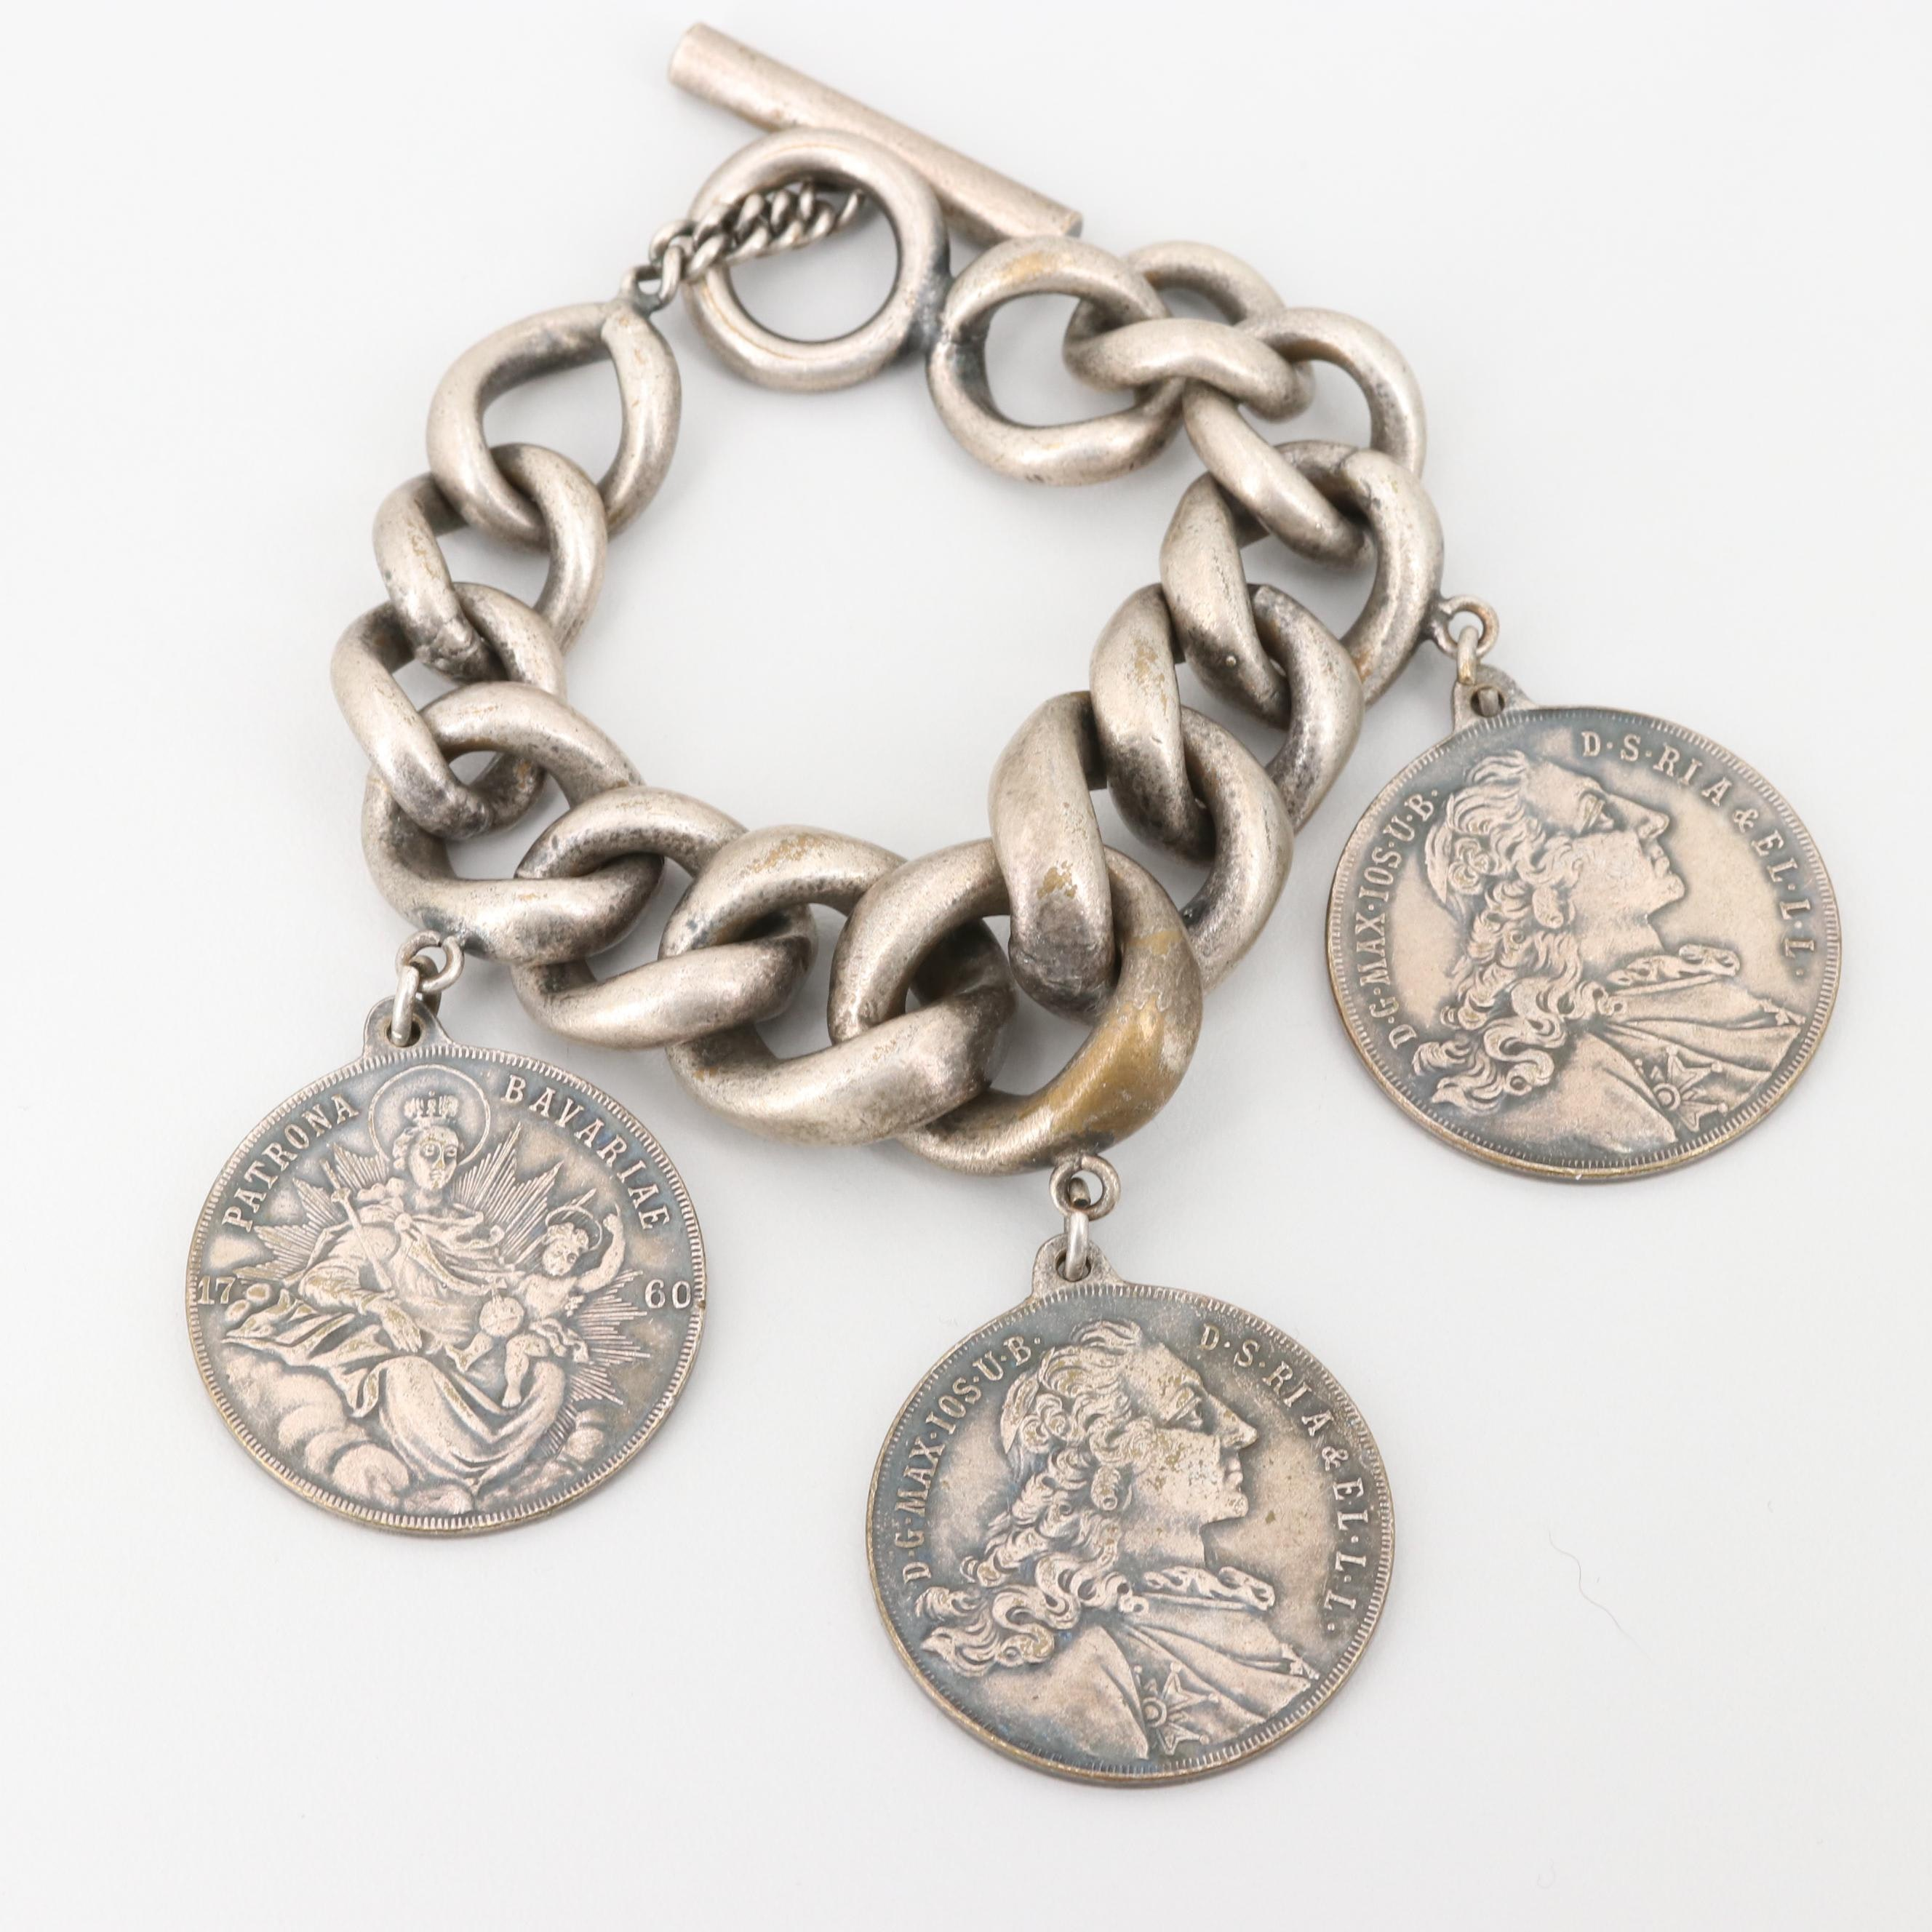 Link Bracelet with Reproduction of Bavarian 1-Konventionsthaler Coins